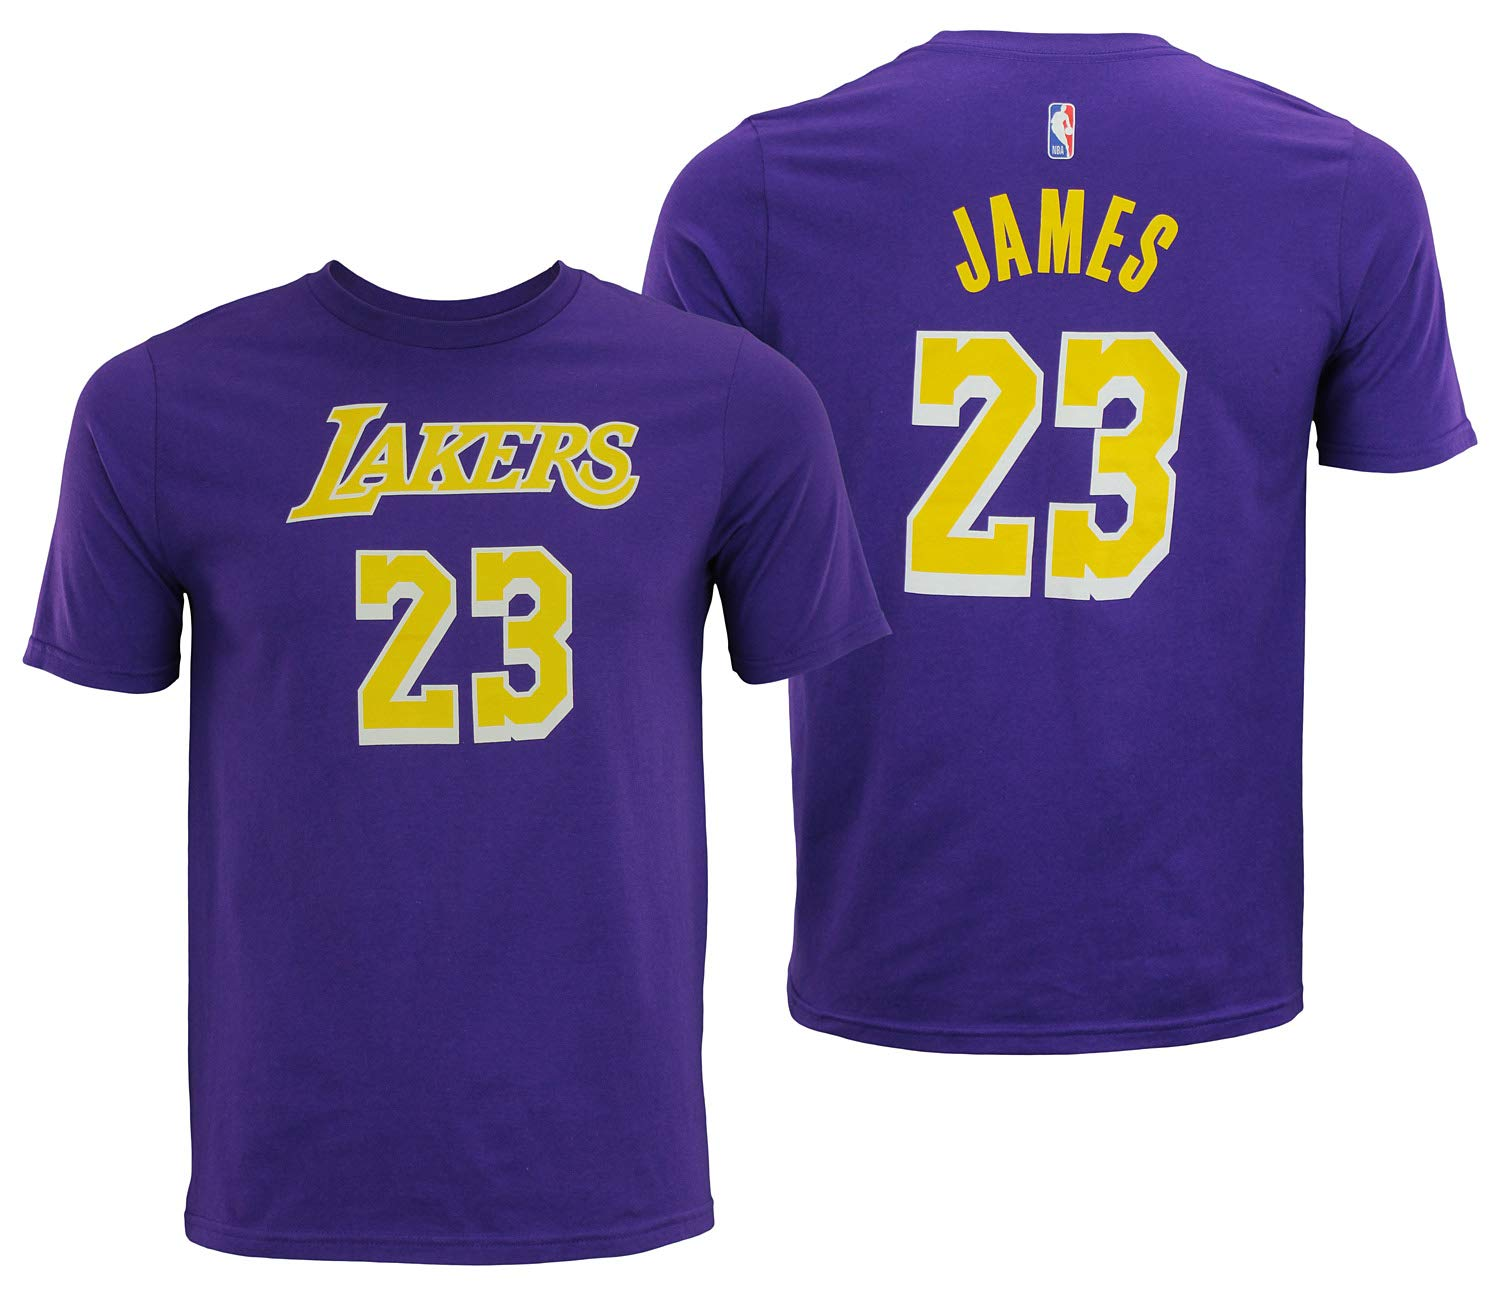 release date f4633 61da8 NBA Youth Los Angeles Lakers Lebron James Player Tee, Pick A Color